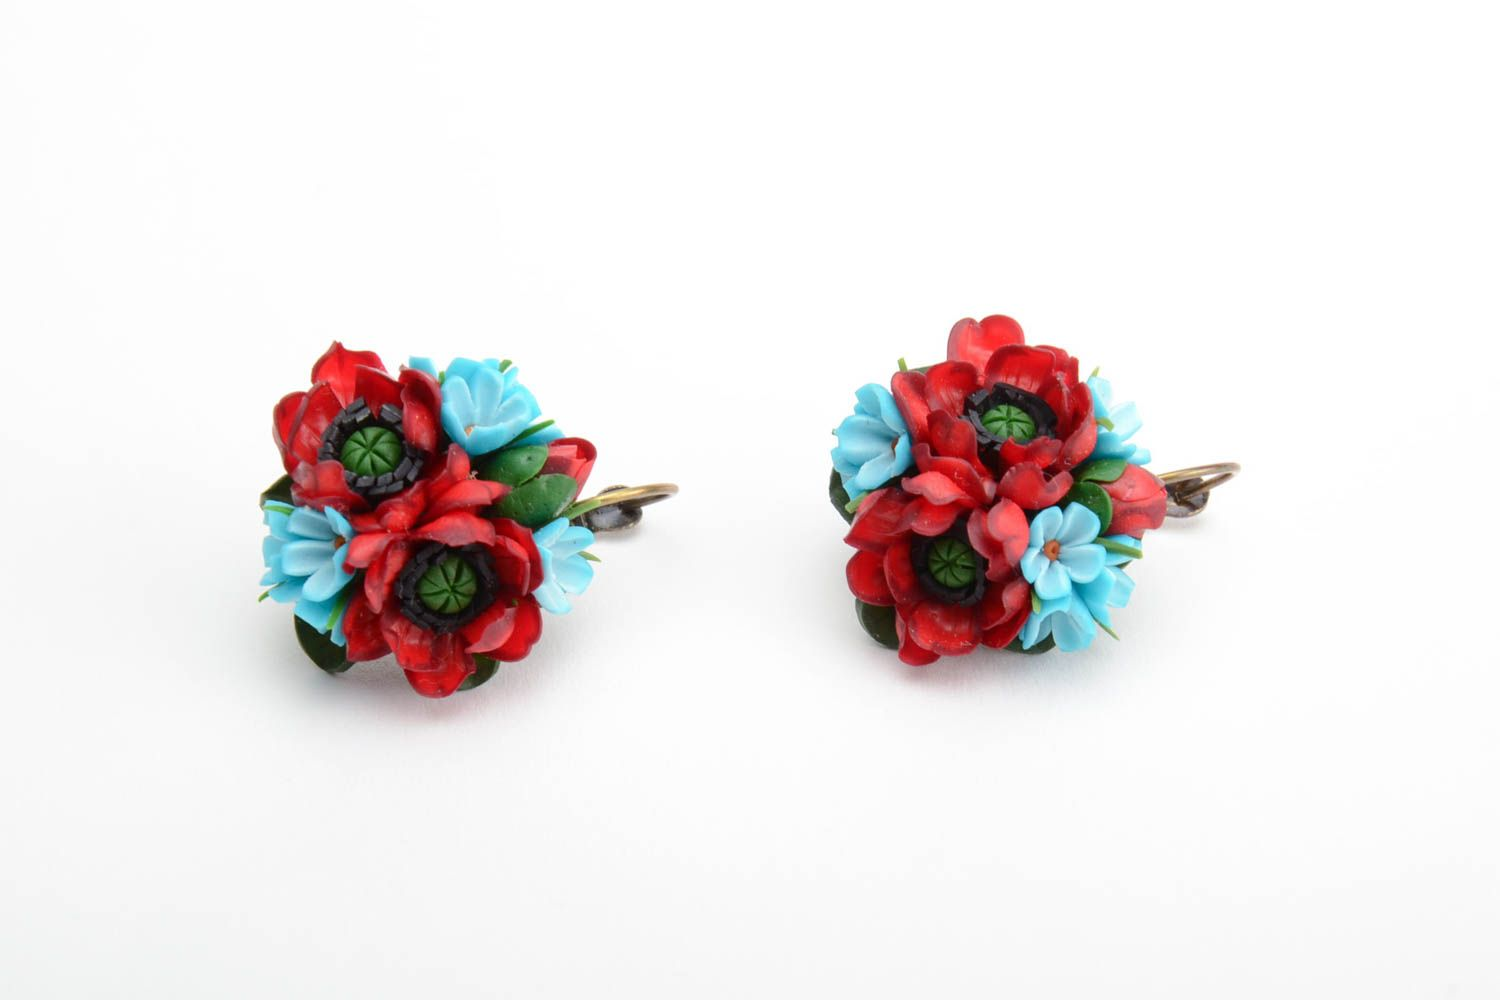 Handmade volume earrings with small red and blue polymer clay flower bouquets photo 2